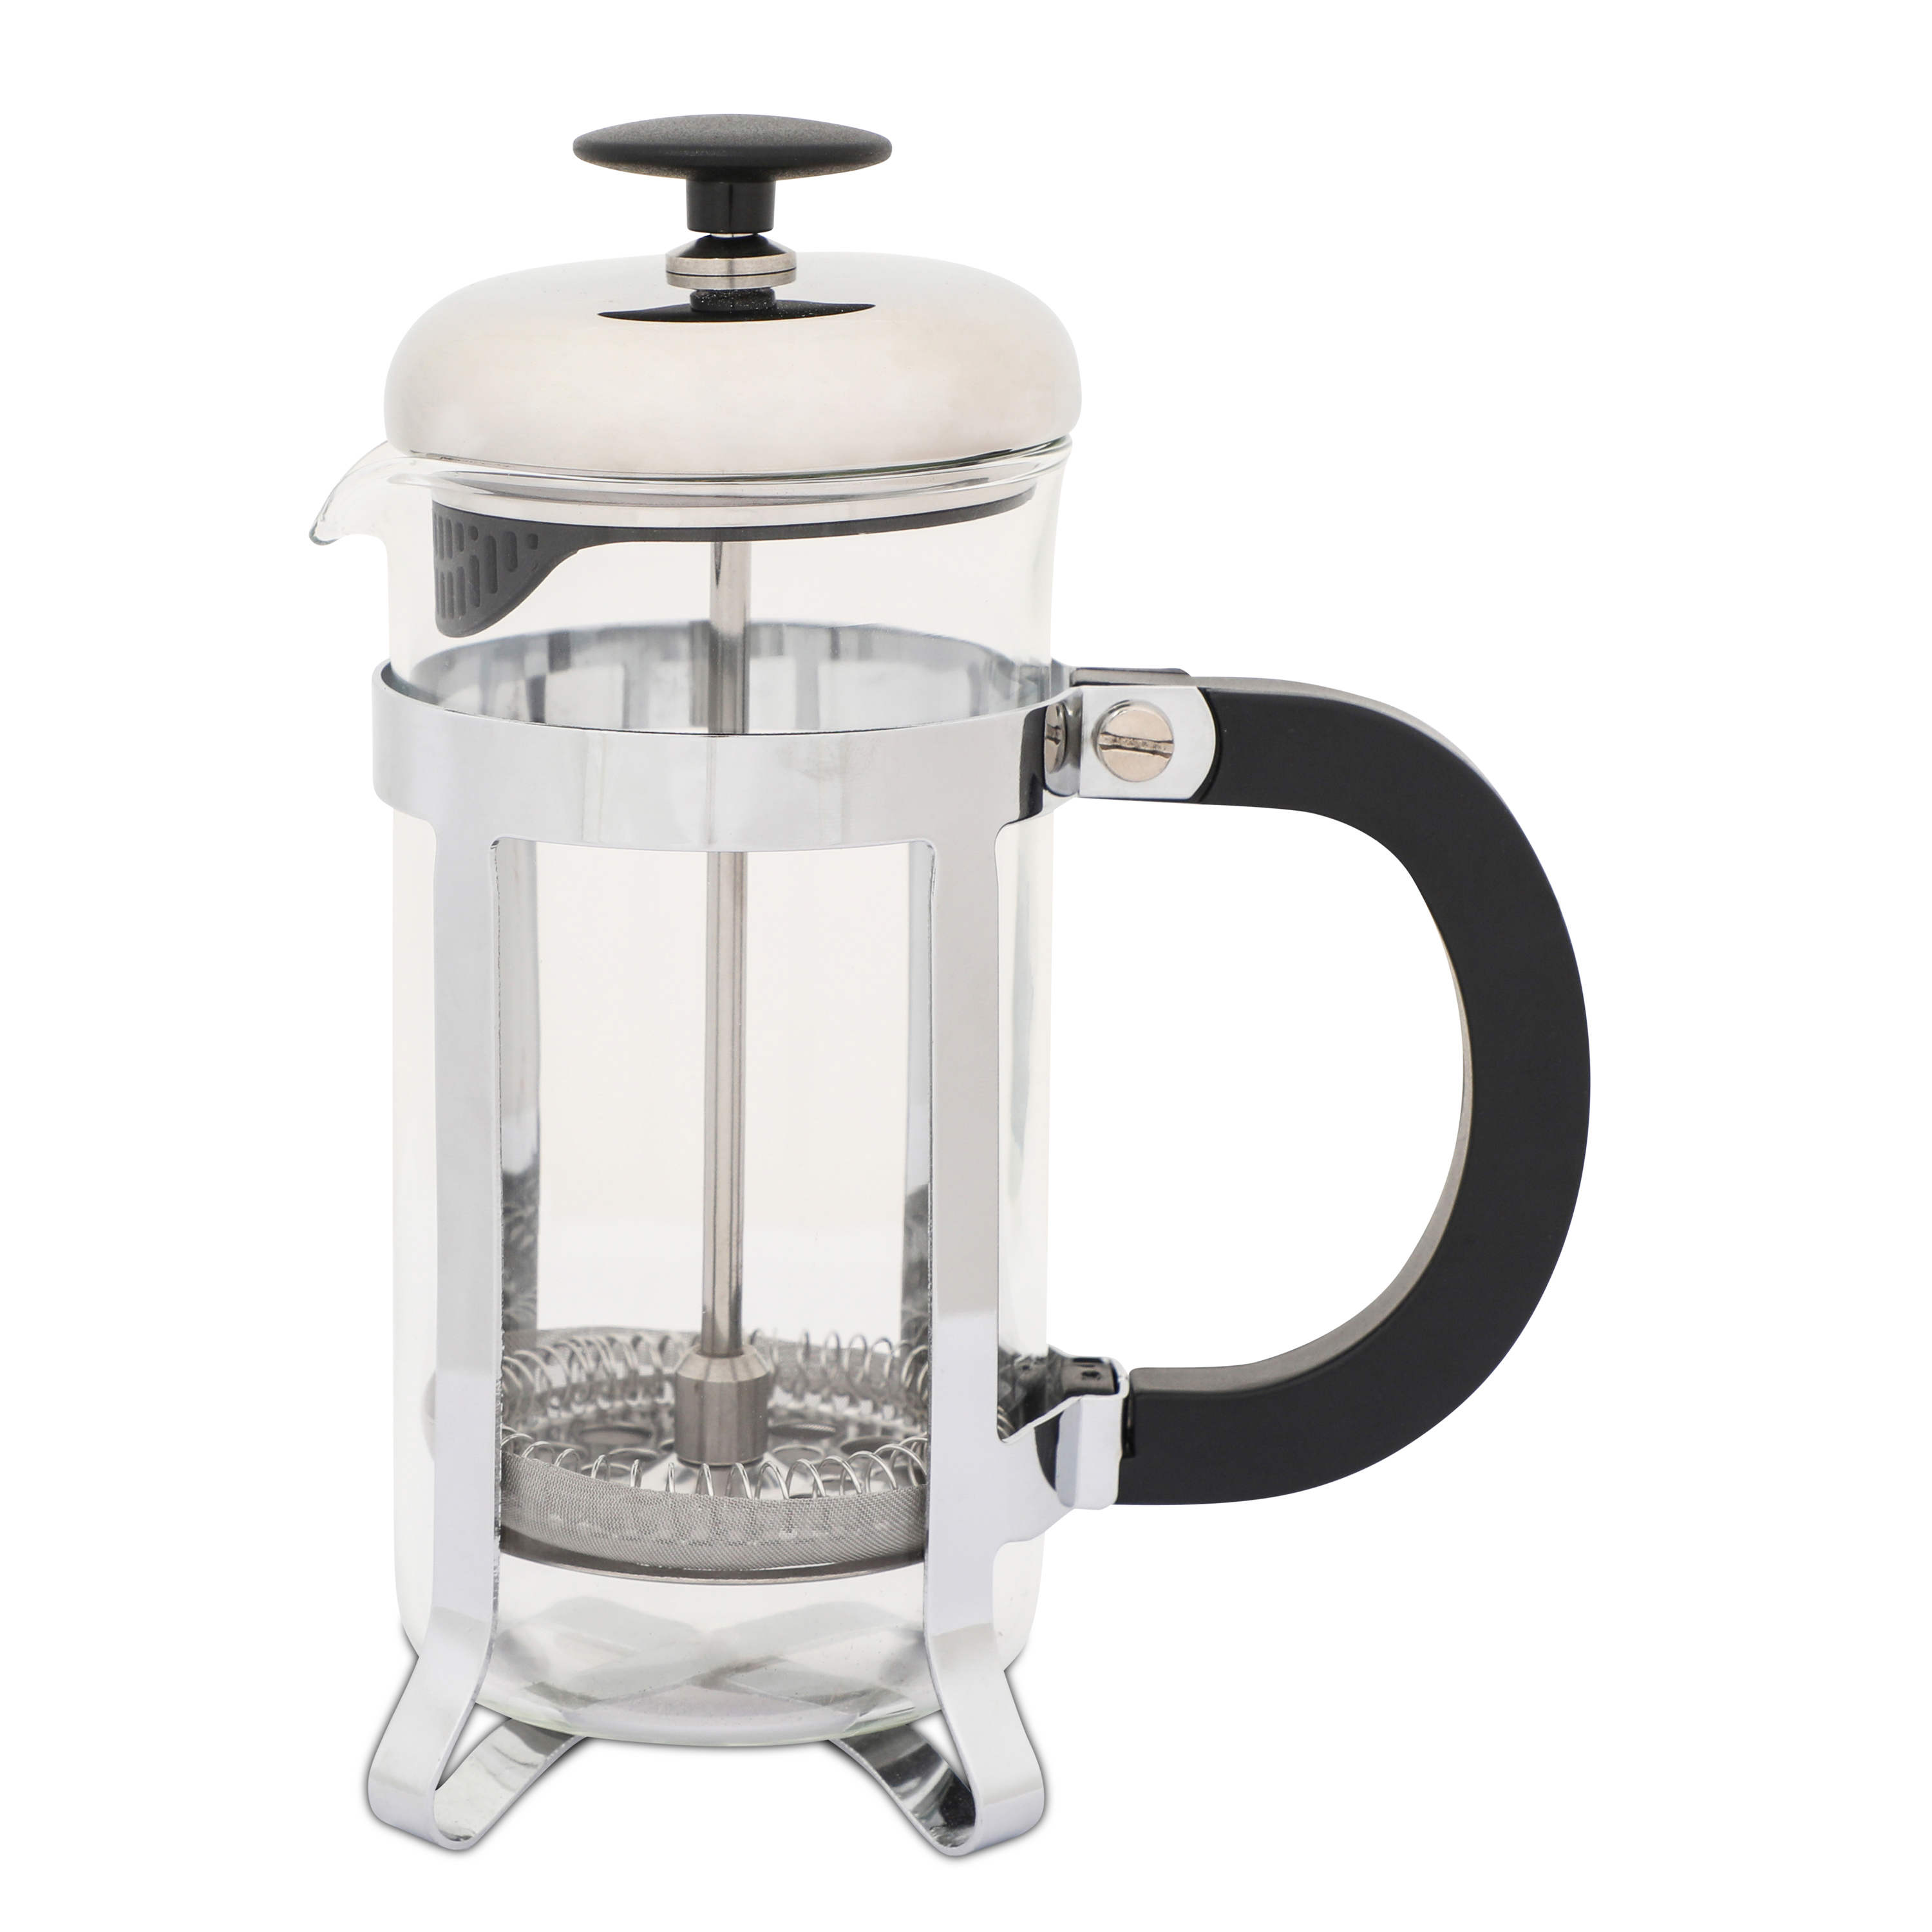 Whittard Silver 8-Cup Cafetiere